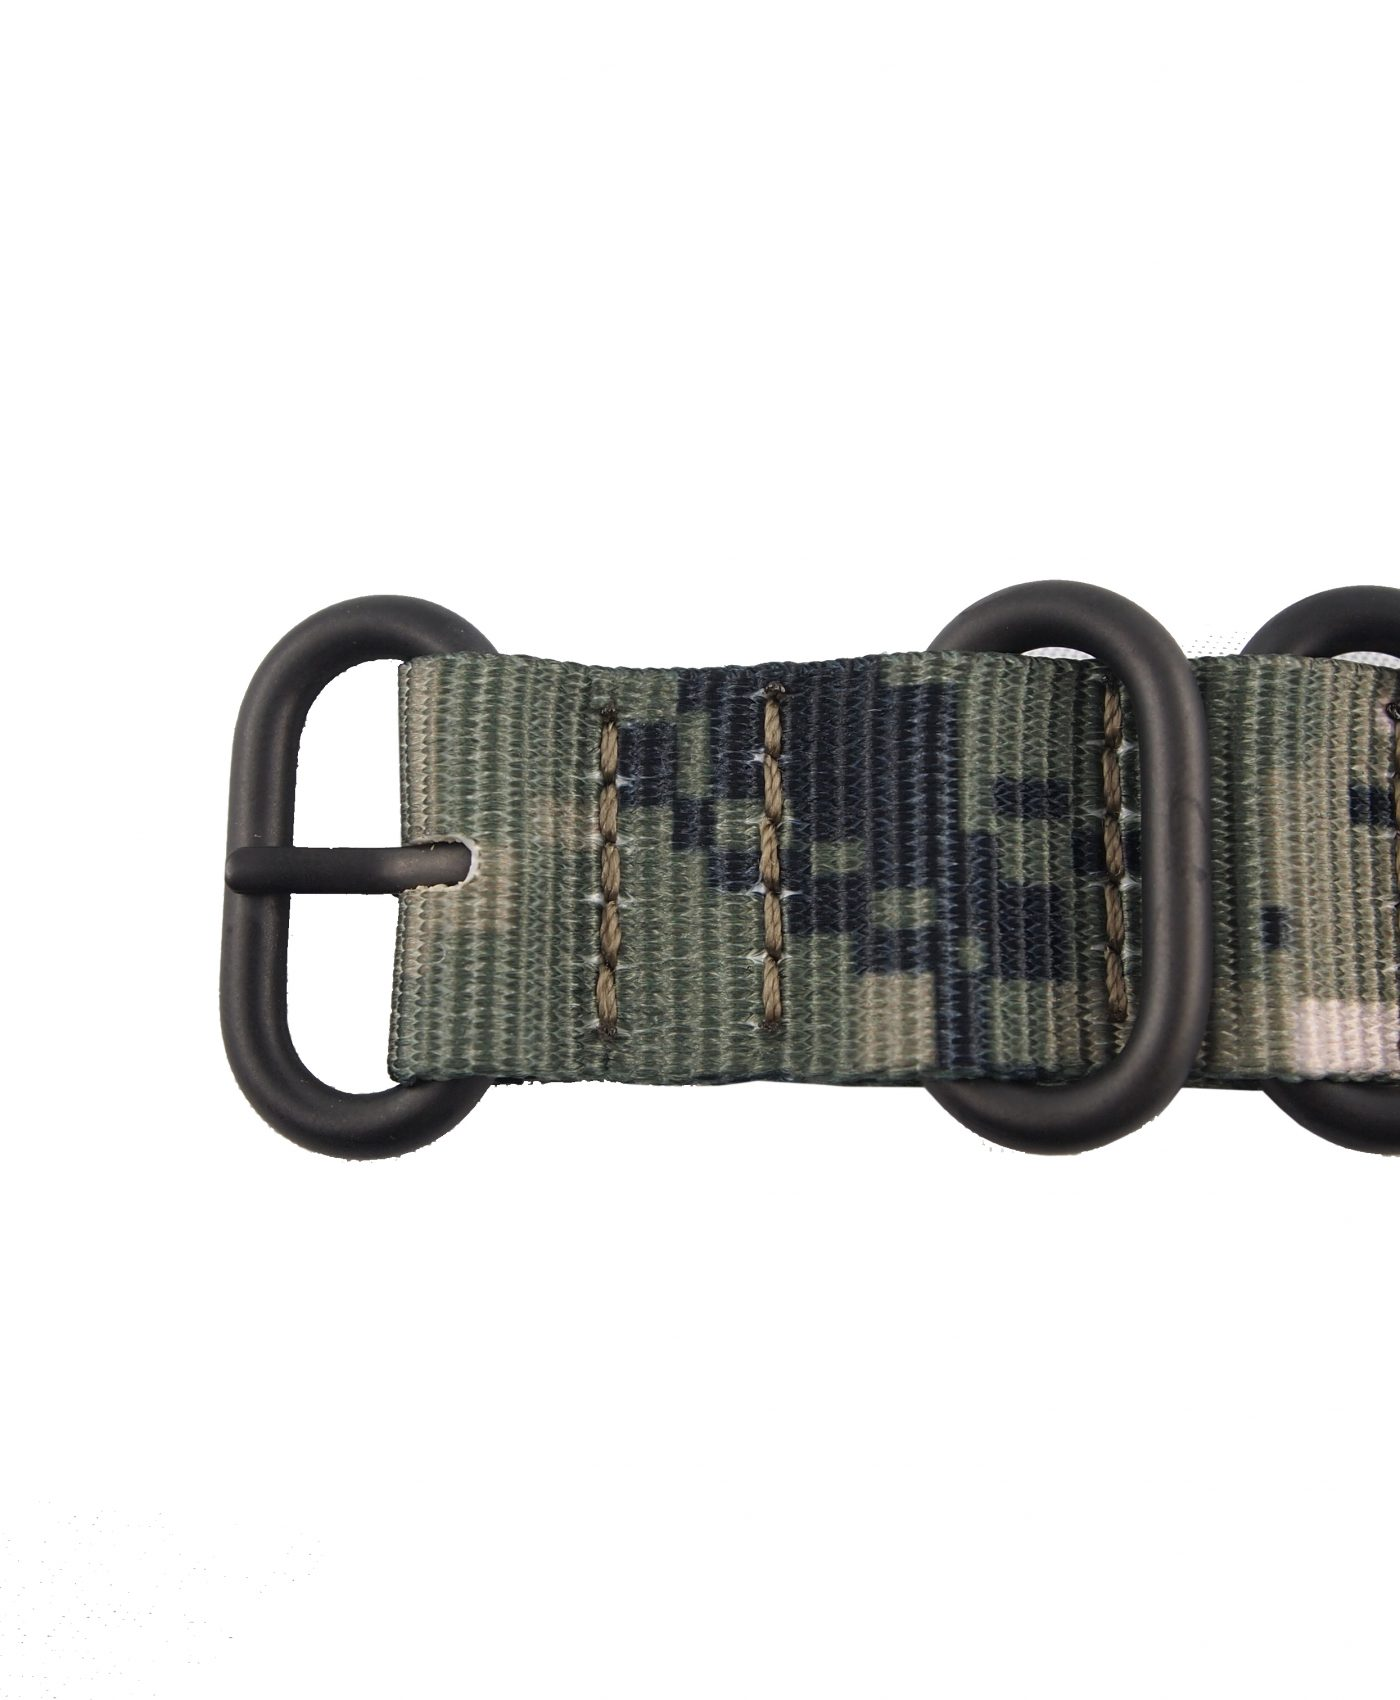 ZULU-Strap-Camo-6-PVD-Steel-by-WatchBandit